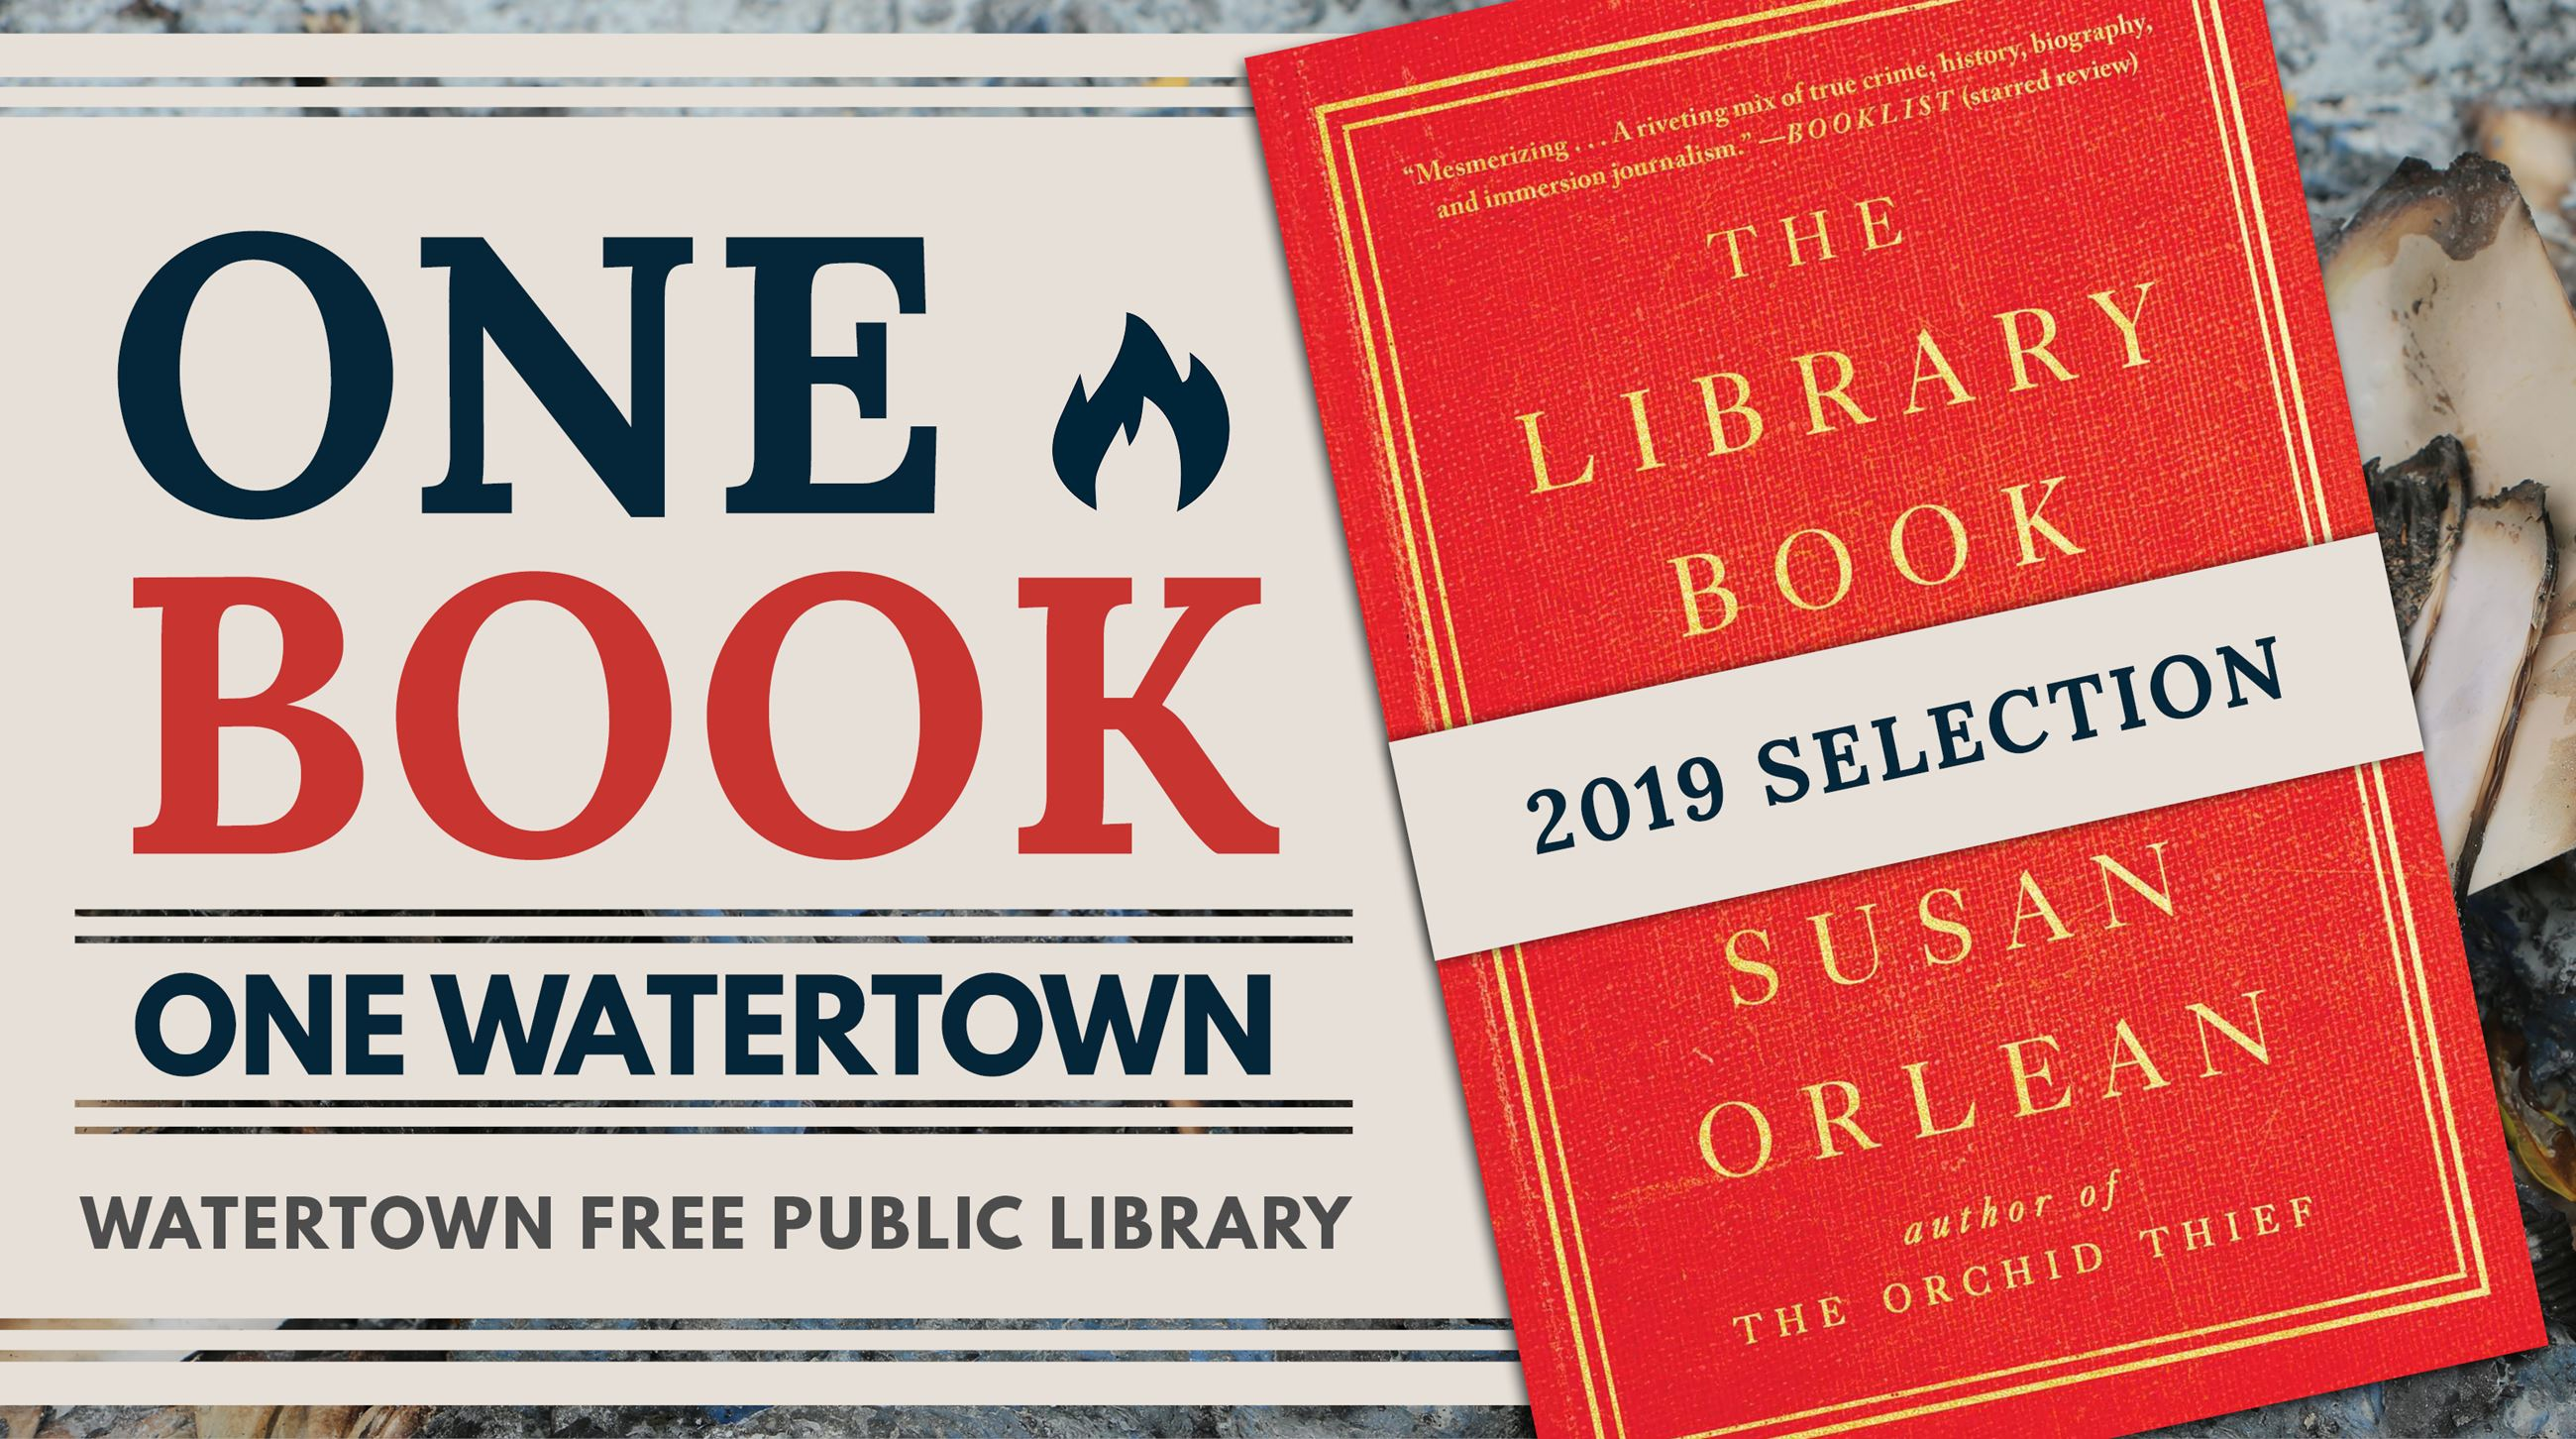 Book cover of The Library Book with announcement of One Book One Watertown 2019 selection.